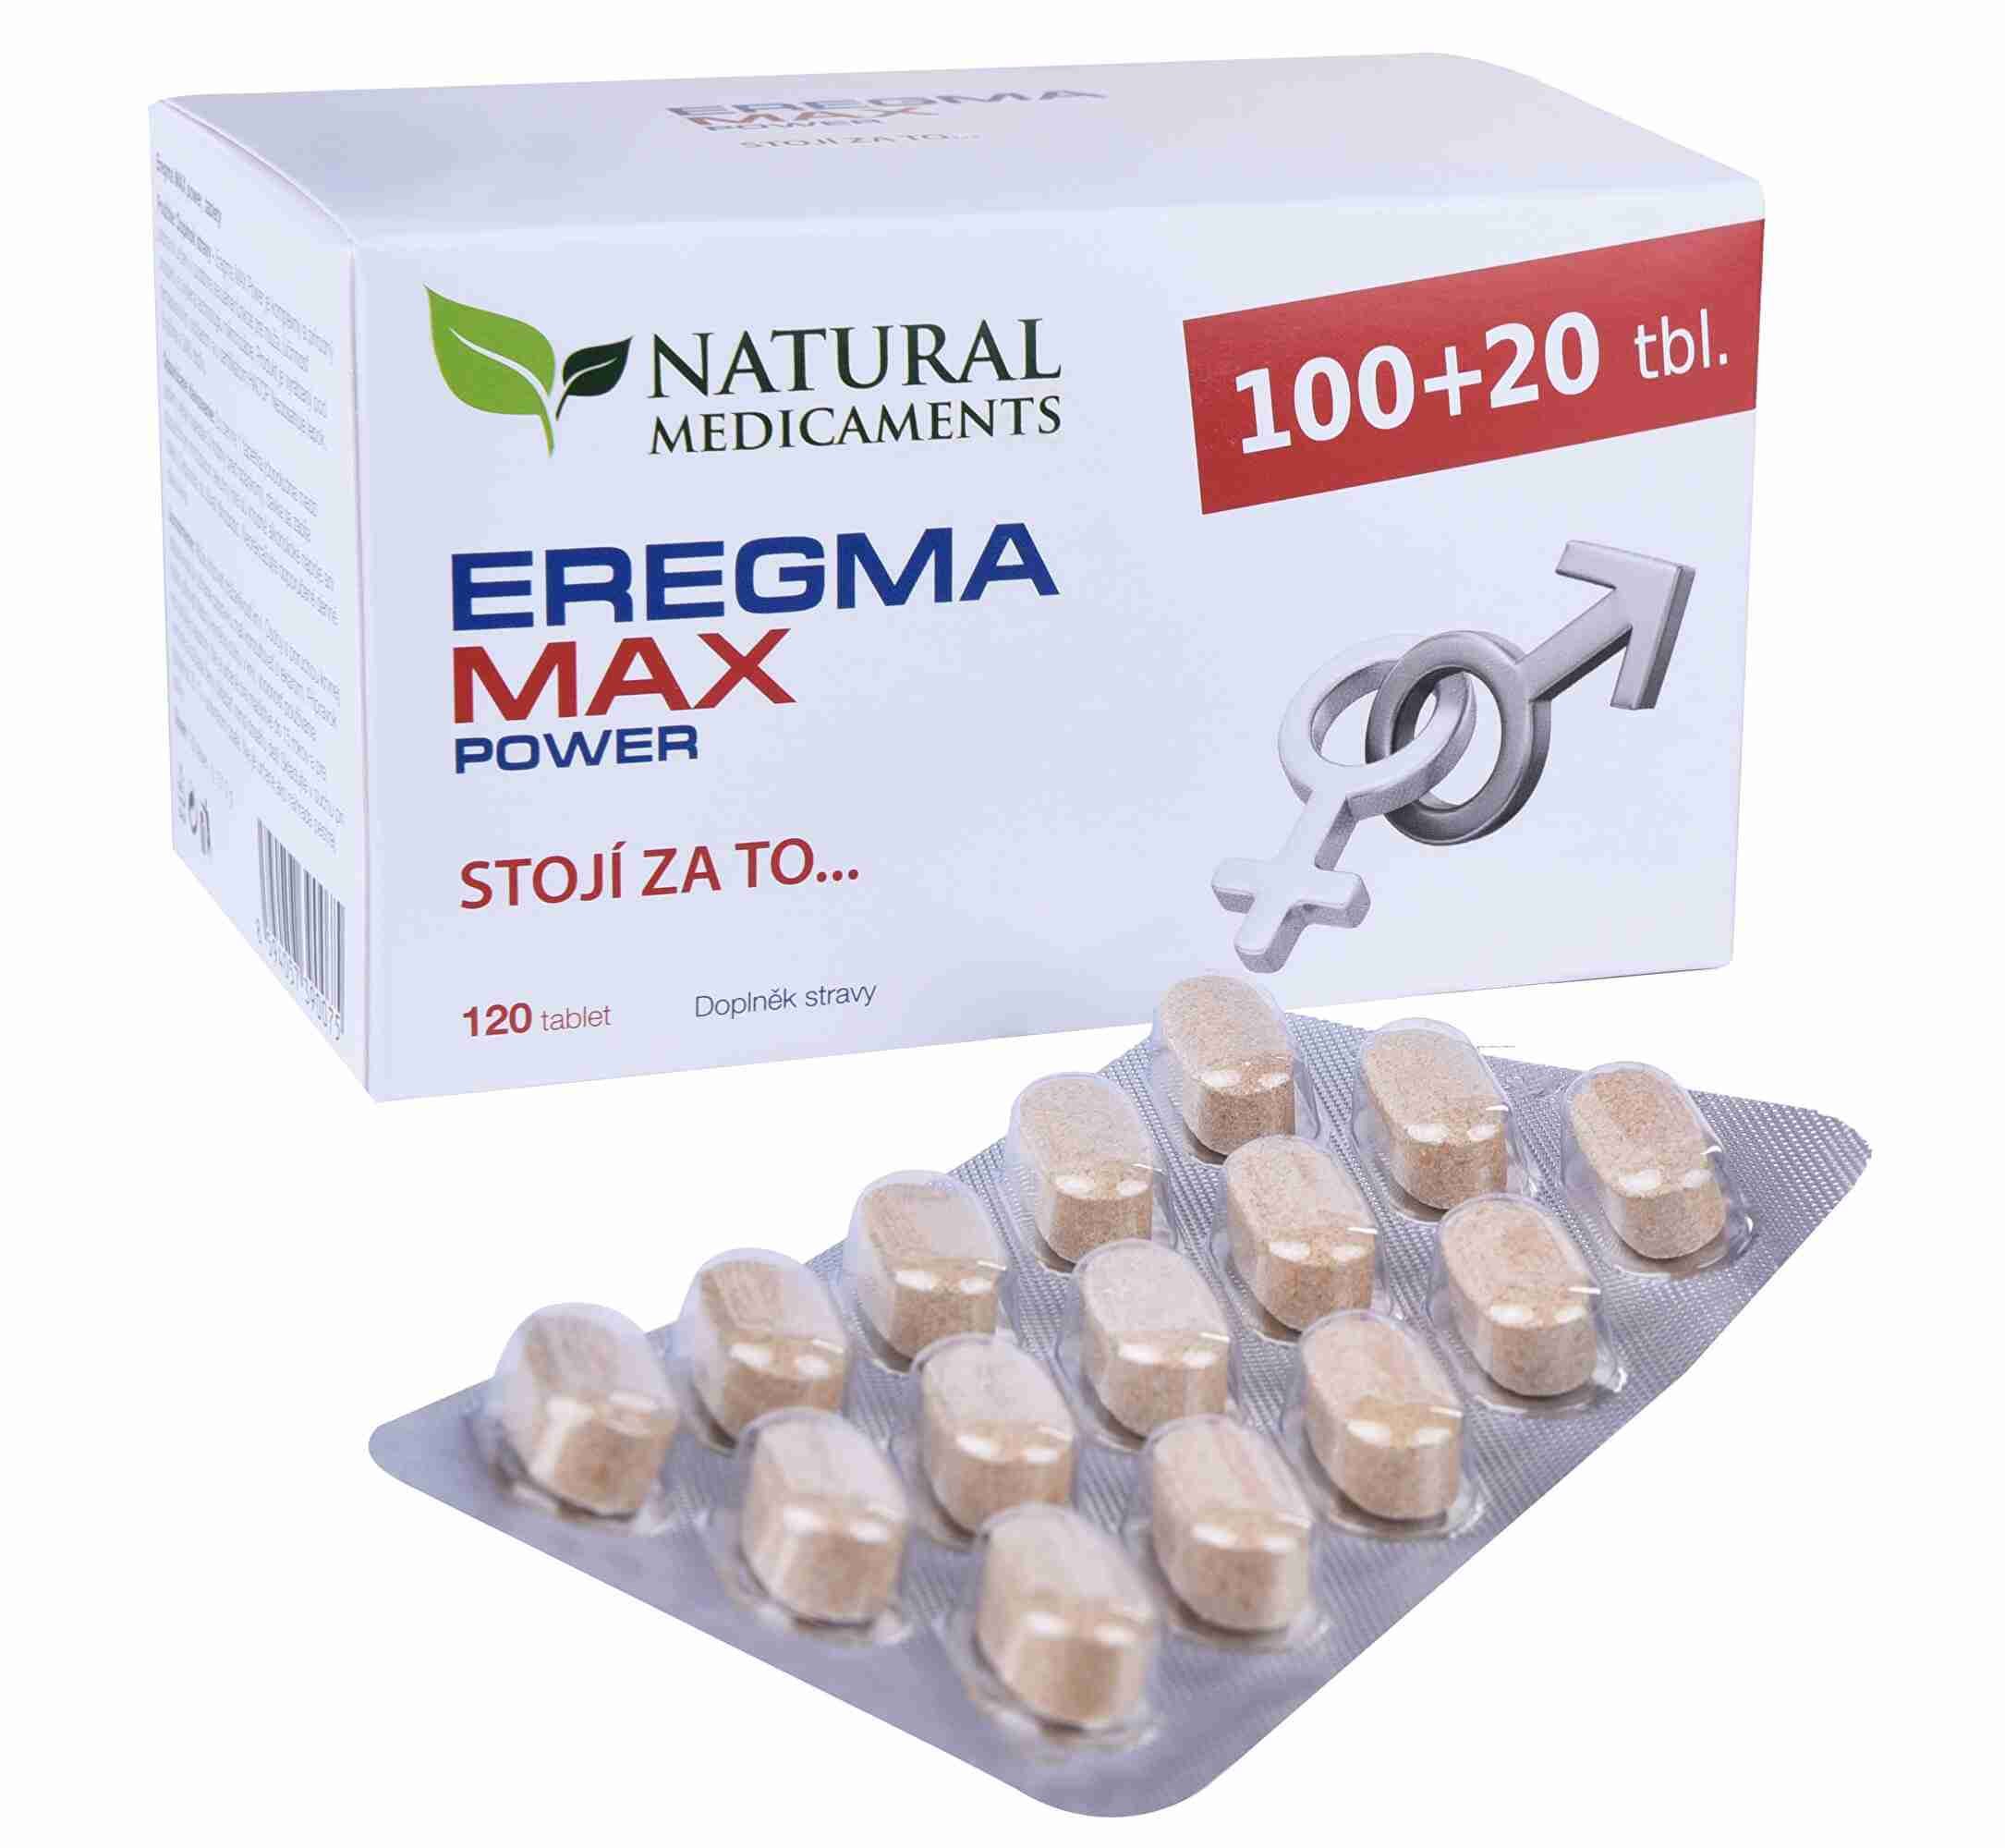 Natural Medicaments Eregma MAX power 100 tbl. + 20 tbl. ZDARMA